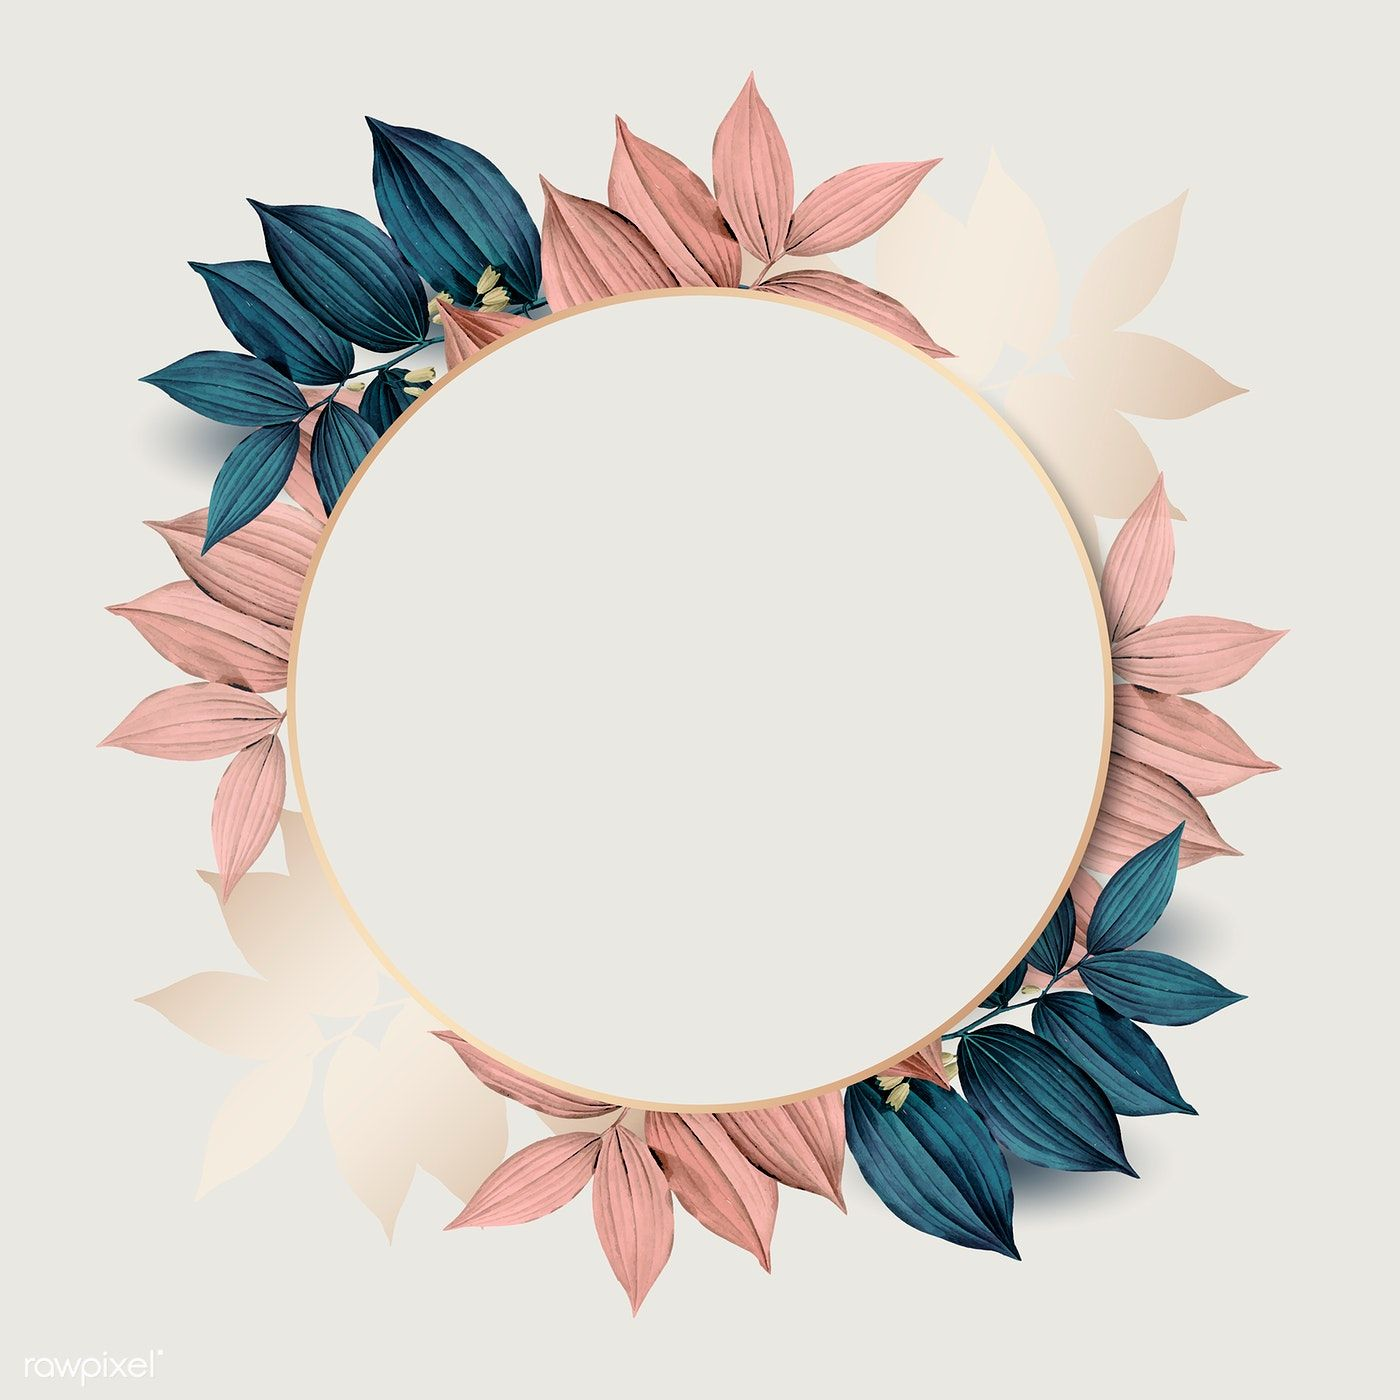 Download premium vector of Round gold frame on pink and